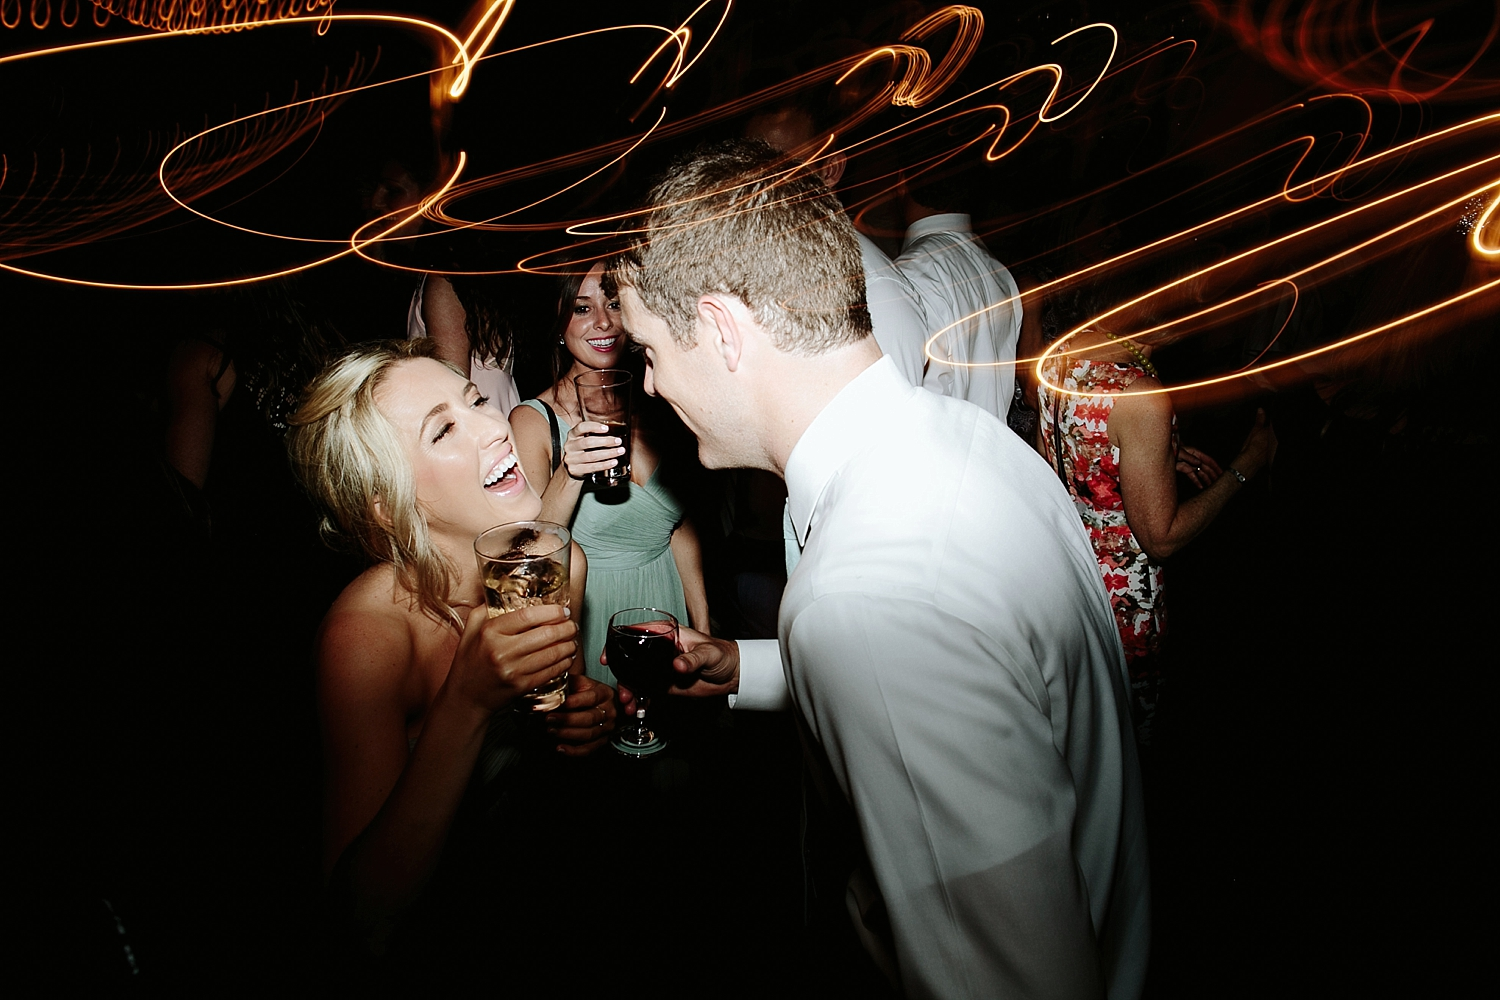 bridal party dancing with drinks in hand